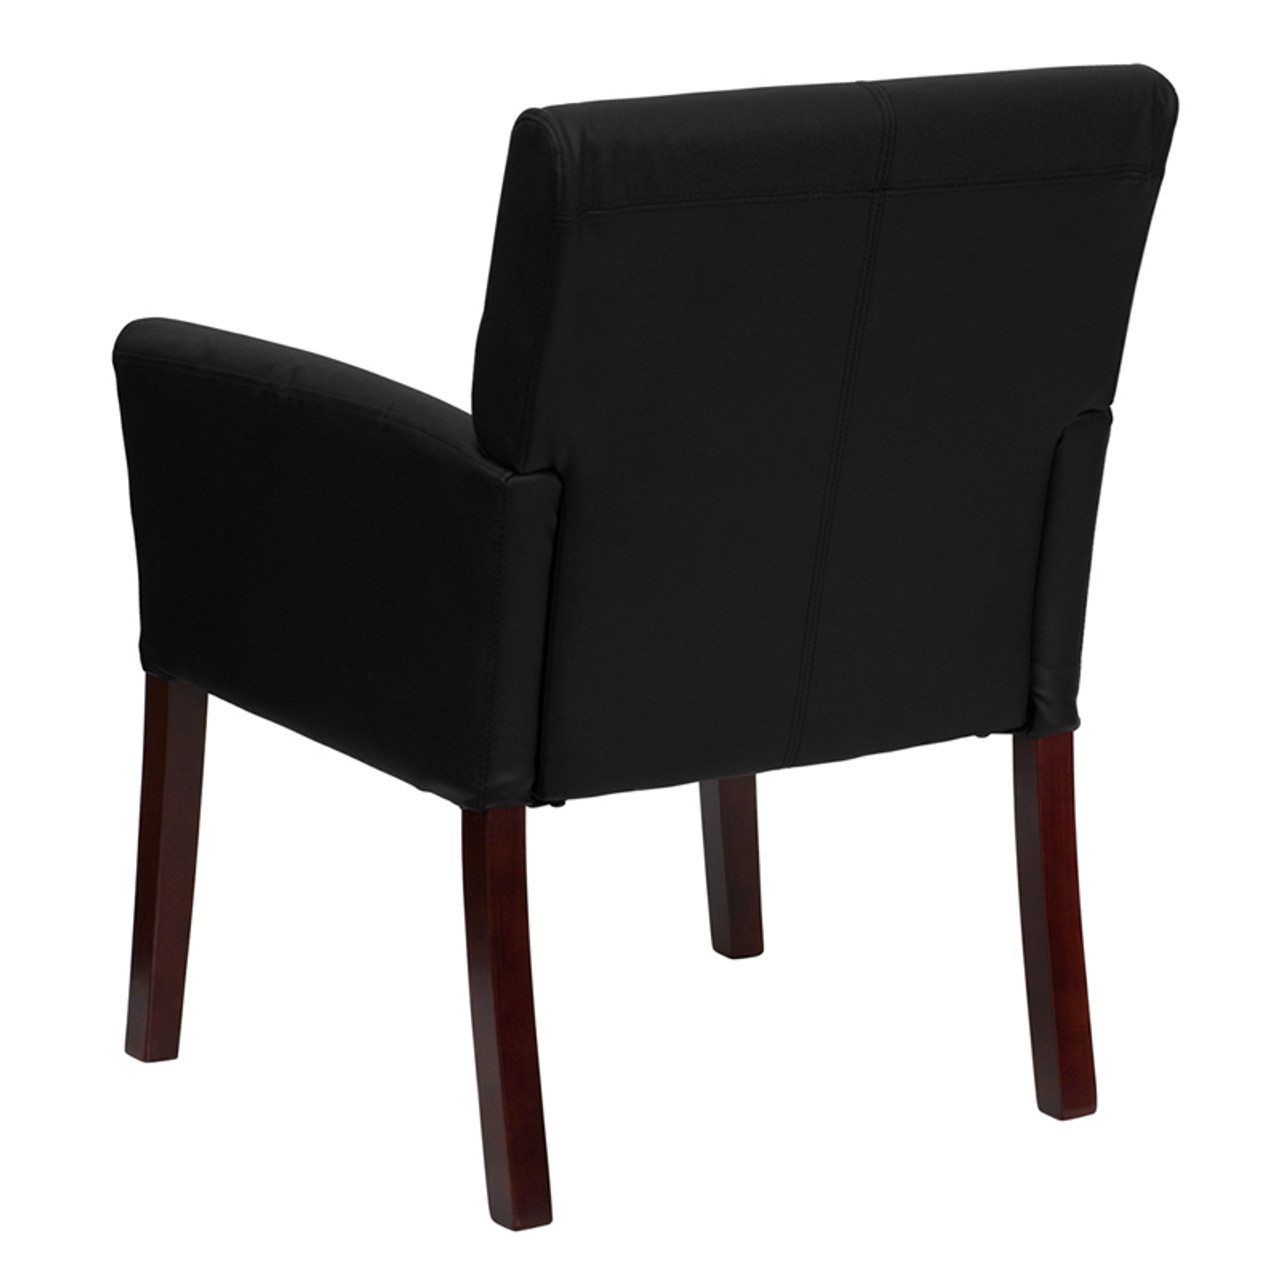 Stupendous Black Leather Executive Side Chair Or Reception Chair With Mahogany Legs Ff 0451 14 Pdpeps Interior Chair Design Pdpepsorg